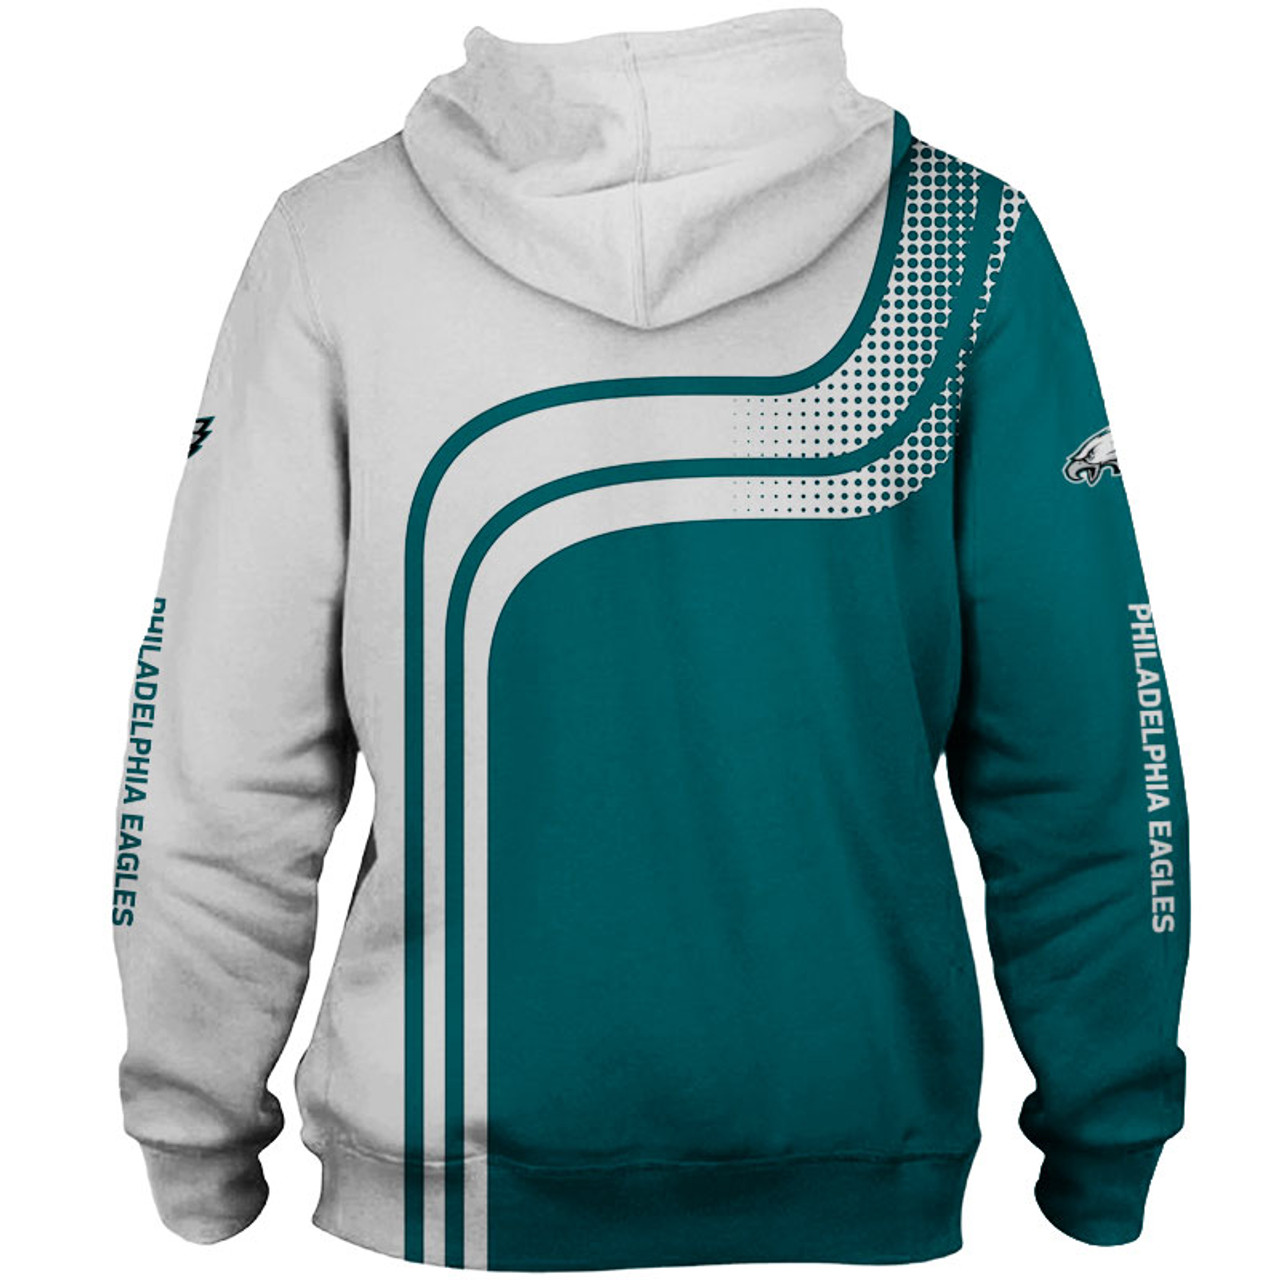 cheap for discount 5d746 c8f29 **(OFFICIAL-N.F.L.PHILADELPHIA-EAGLES-PULLOVER-HOODIES/3D-CUSTOM-EAGLES-LOGOS  & OFFICIAL-EAGLES-TEAM-COLORS/NICE-3D-DETAILED-GRAPHIC-PRINTED-DOUBLE-SI...